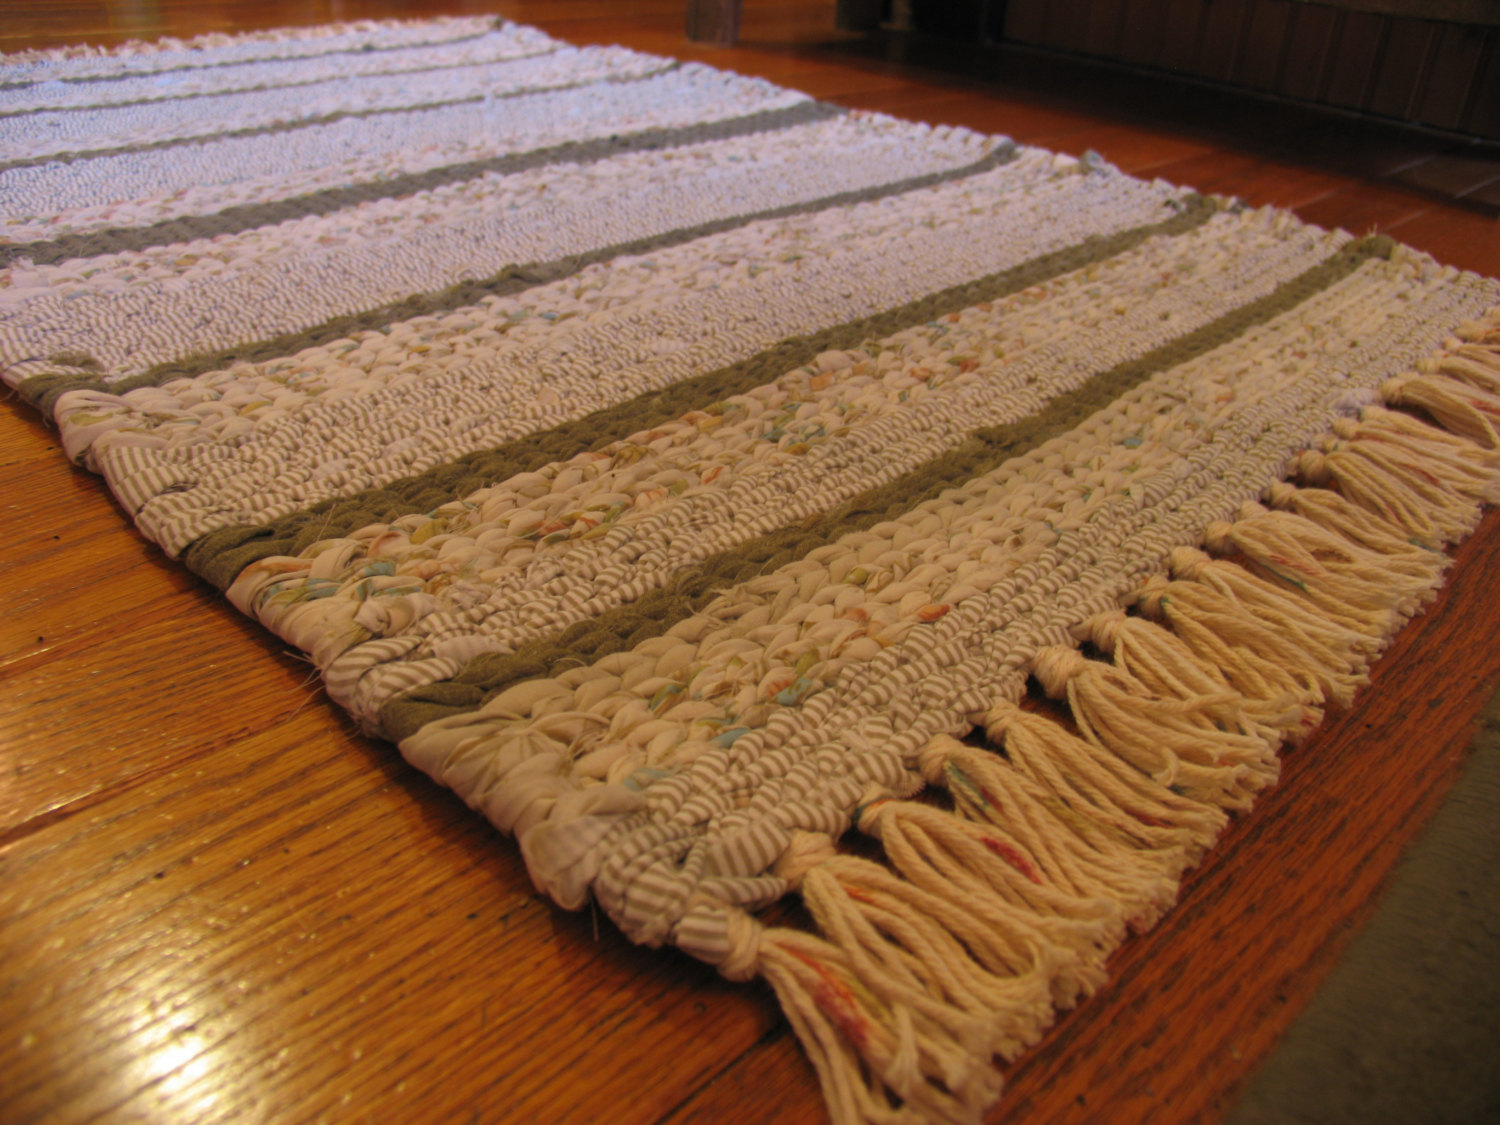 Hand Twined Rag Rug With Hand Tied Fringe In Creams